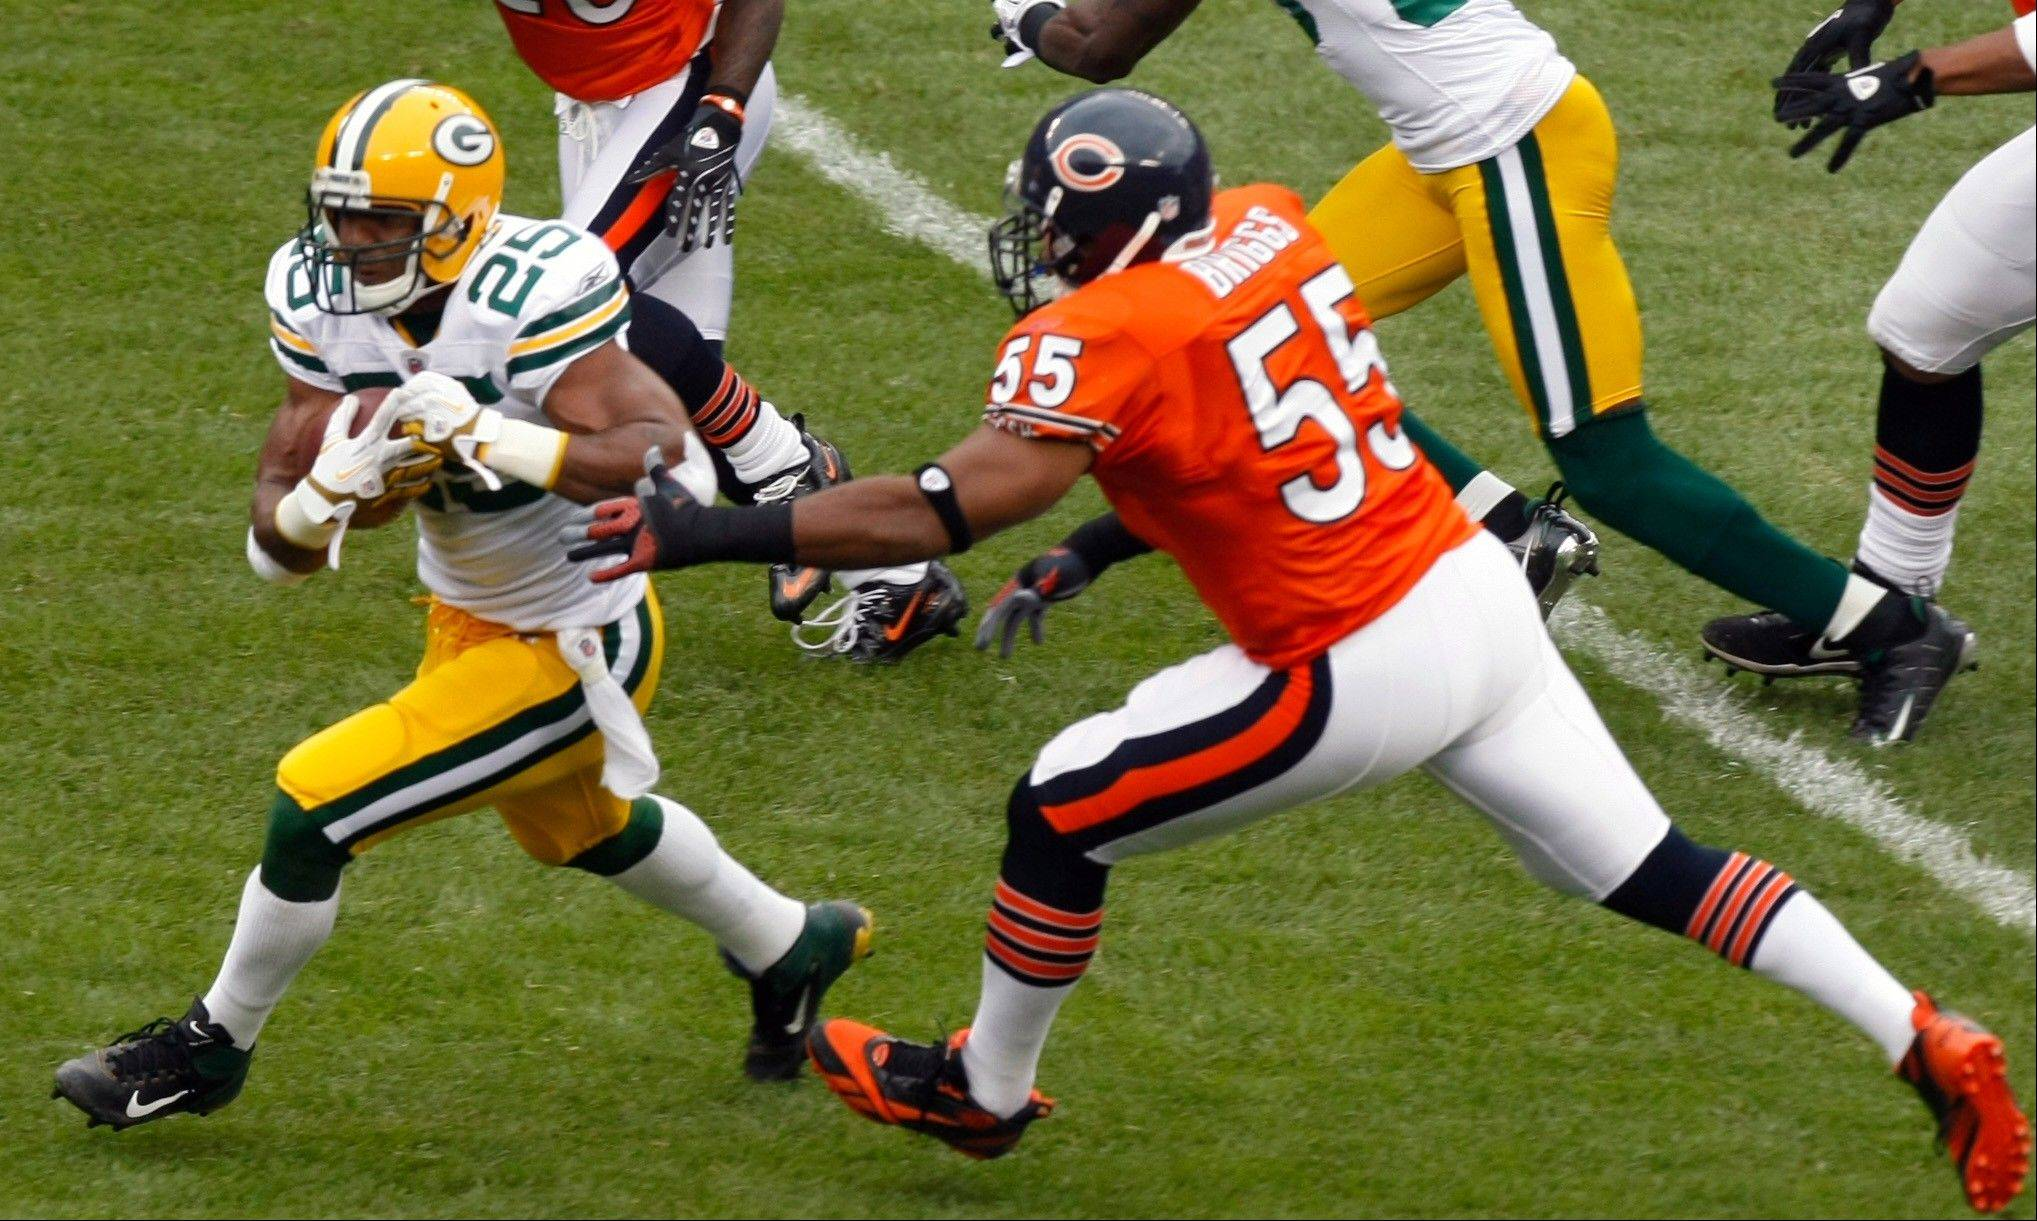 Just when it was starting to look like Ryan Grant had shaken off last year's season-ending ankle injury with a 17-carry, 92-yard rushing performance in the Packers' victory over the Bears, Grant has missed time in practice with a bruised kidney and his status for their game against Denver on Sunday is unclear.